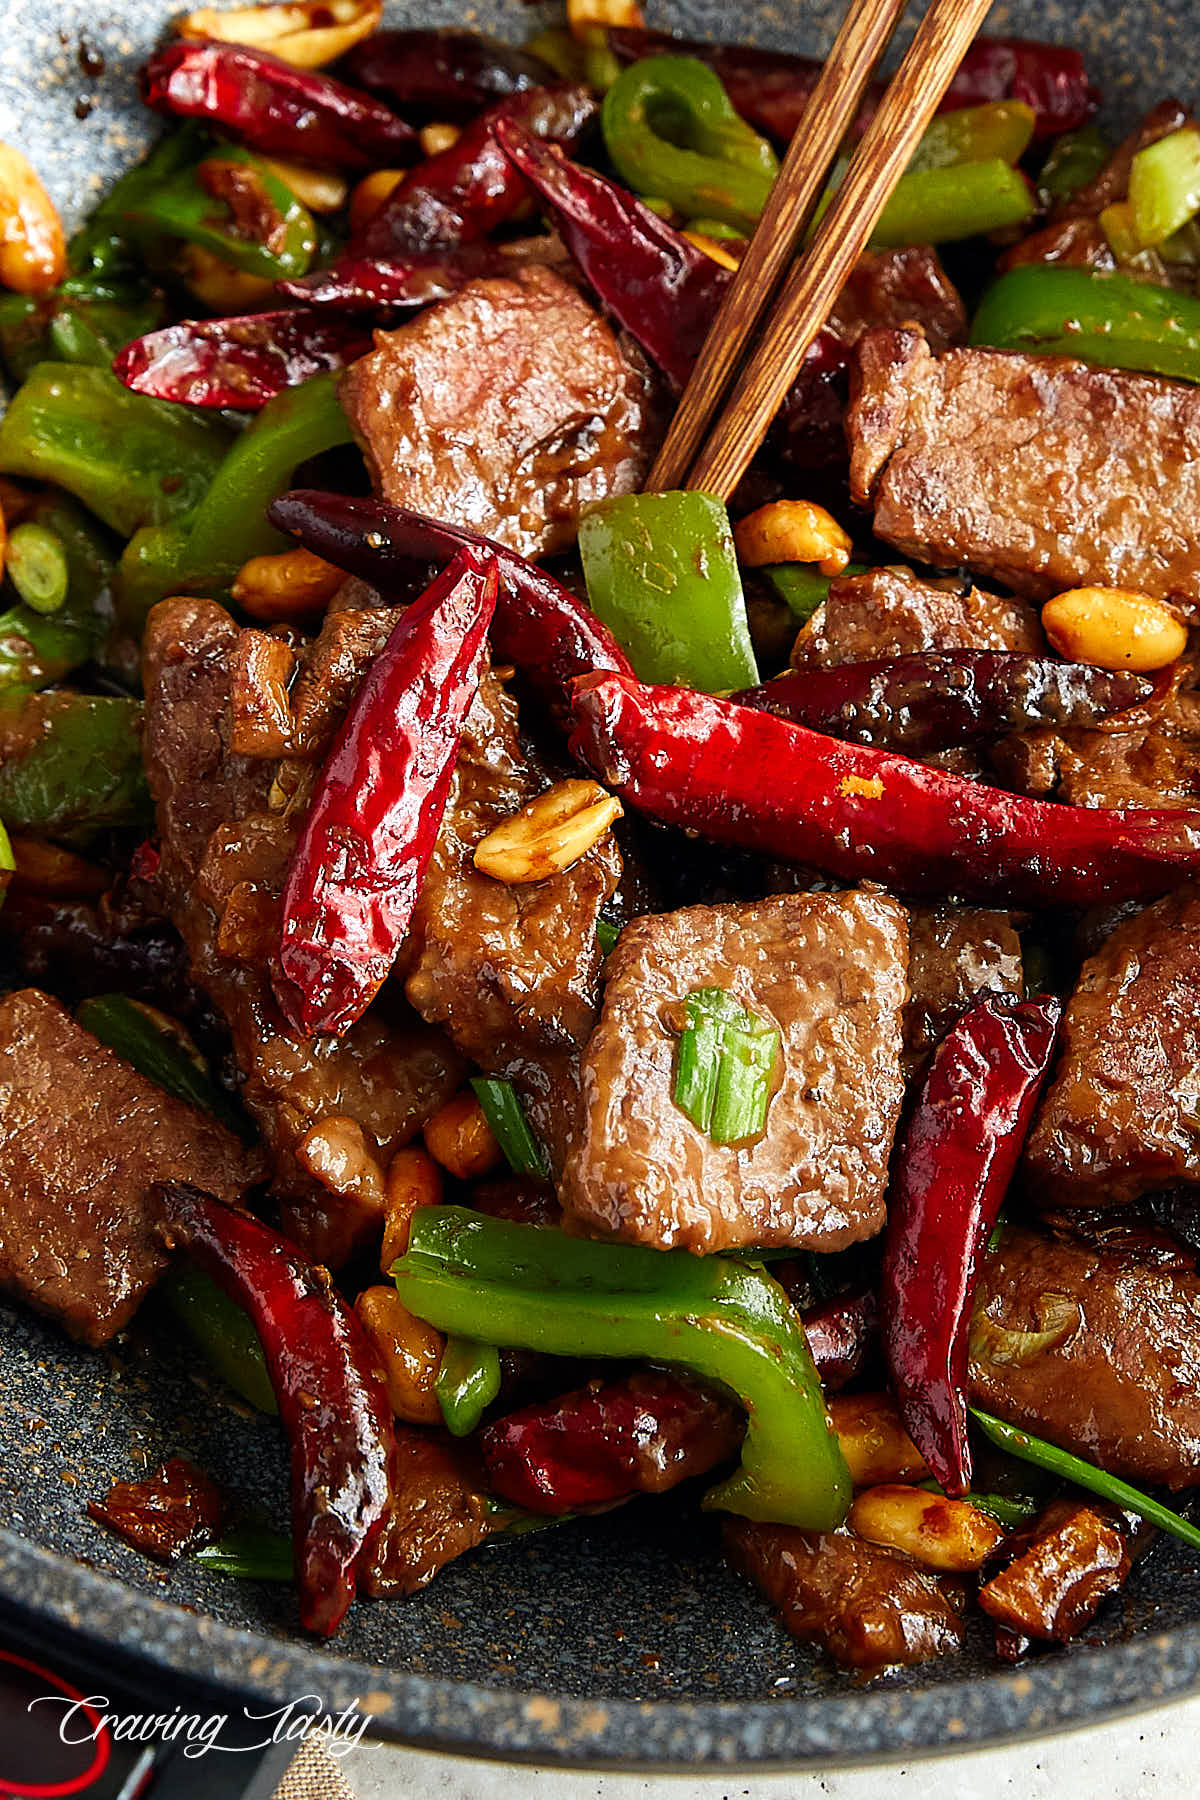 Kung pao style beef, in a wok with hot peppers, peanuts, and bell peppers.